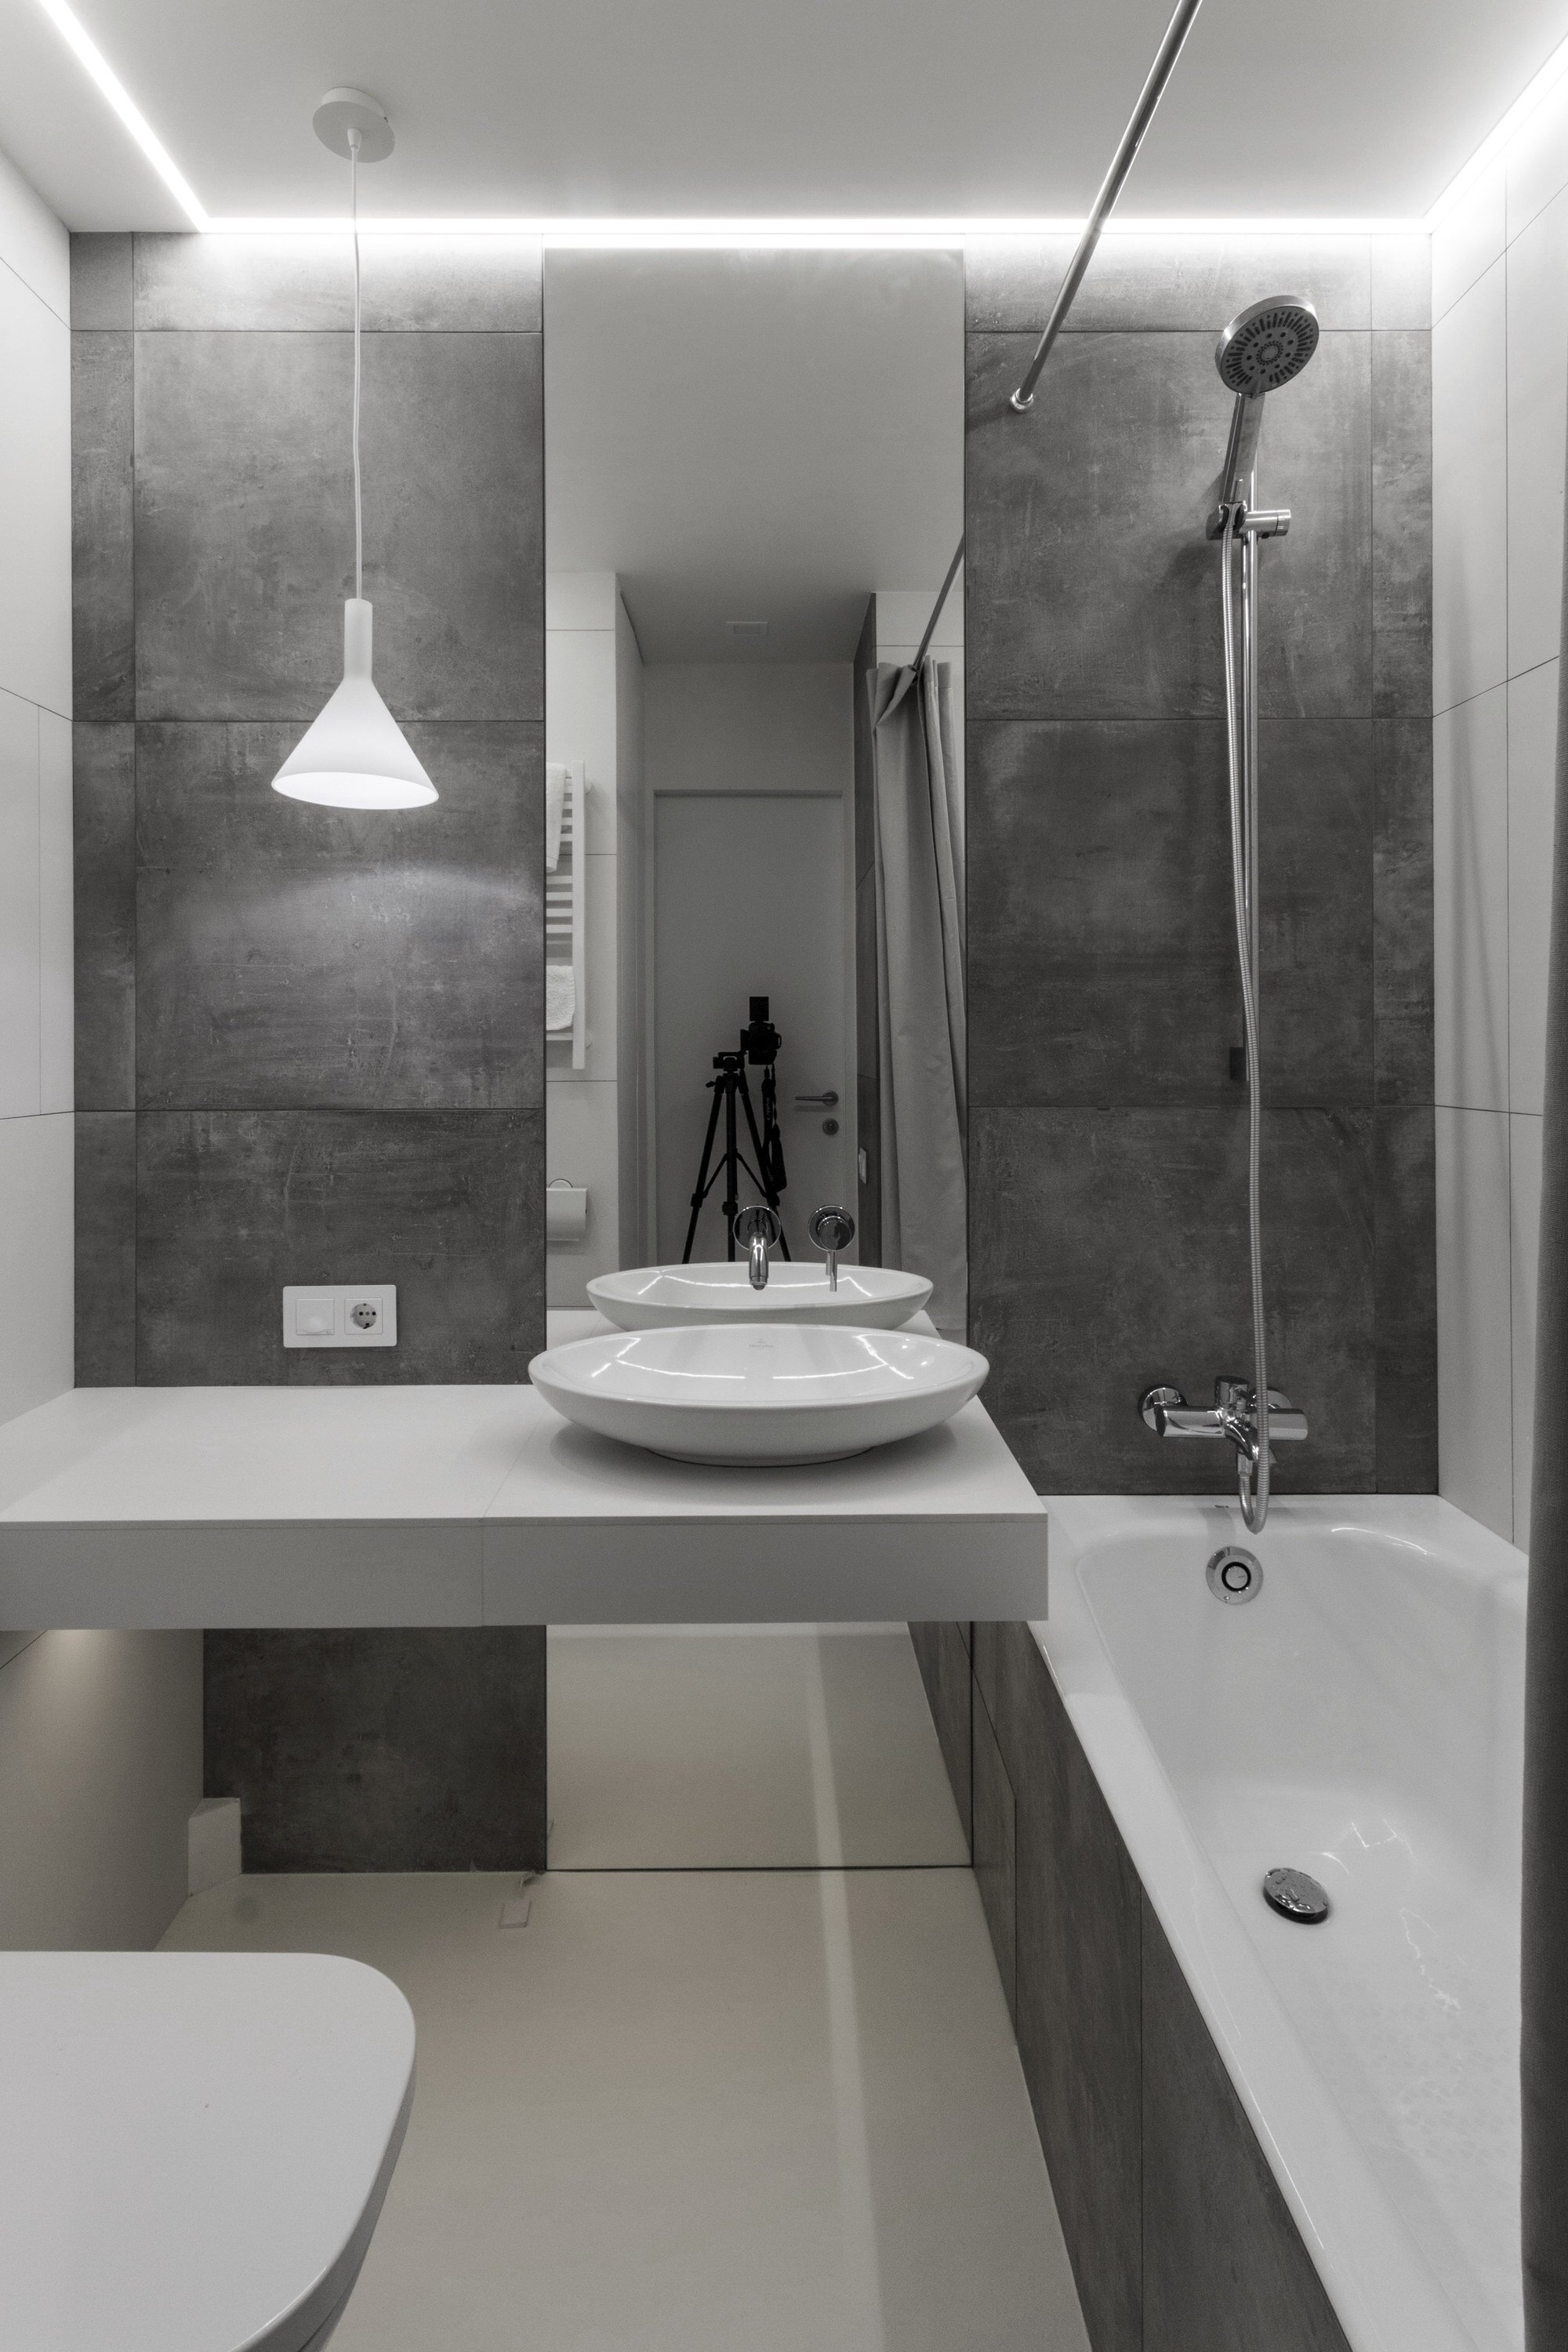 gorki-ruetemple-moscow-bathroom-humble-homes